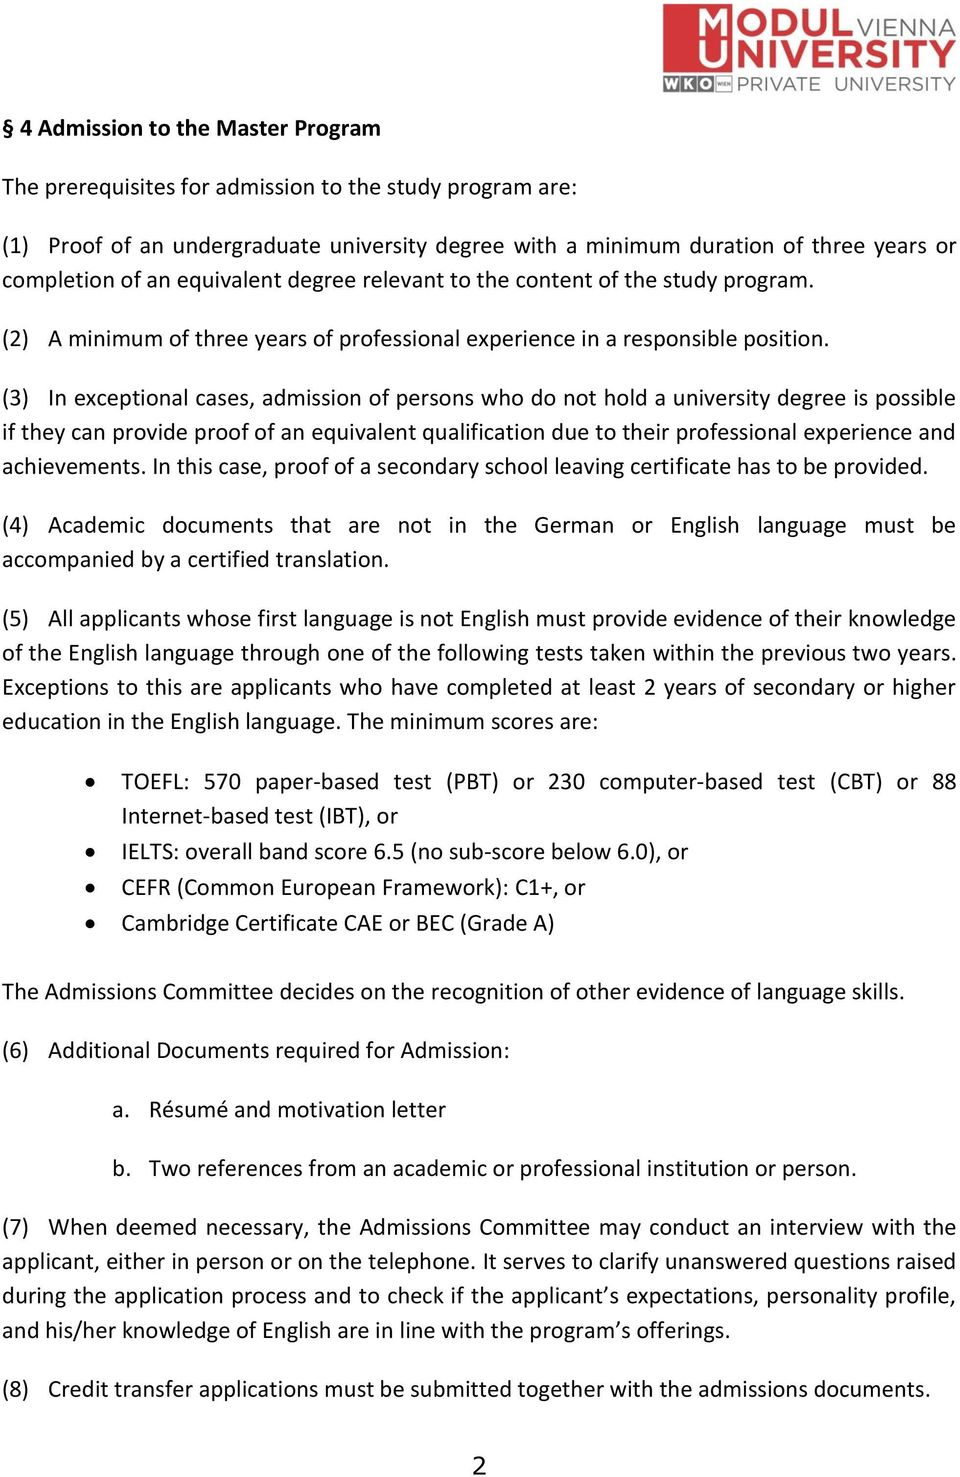 (3) In exceptional cases, admission of persons who do not hold a university degree is possible if they can provide proof of an equivalent qualification due to their professional experience and